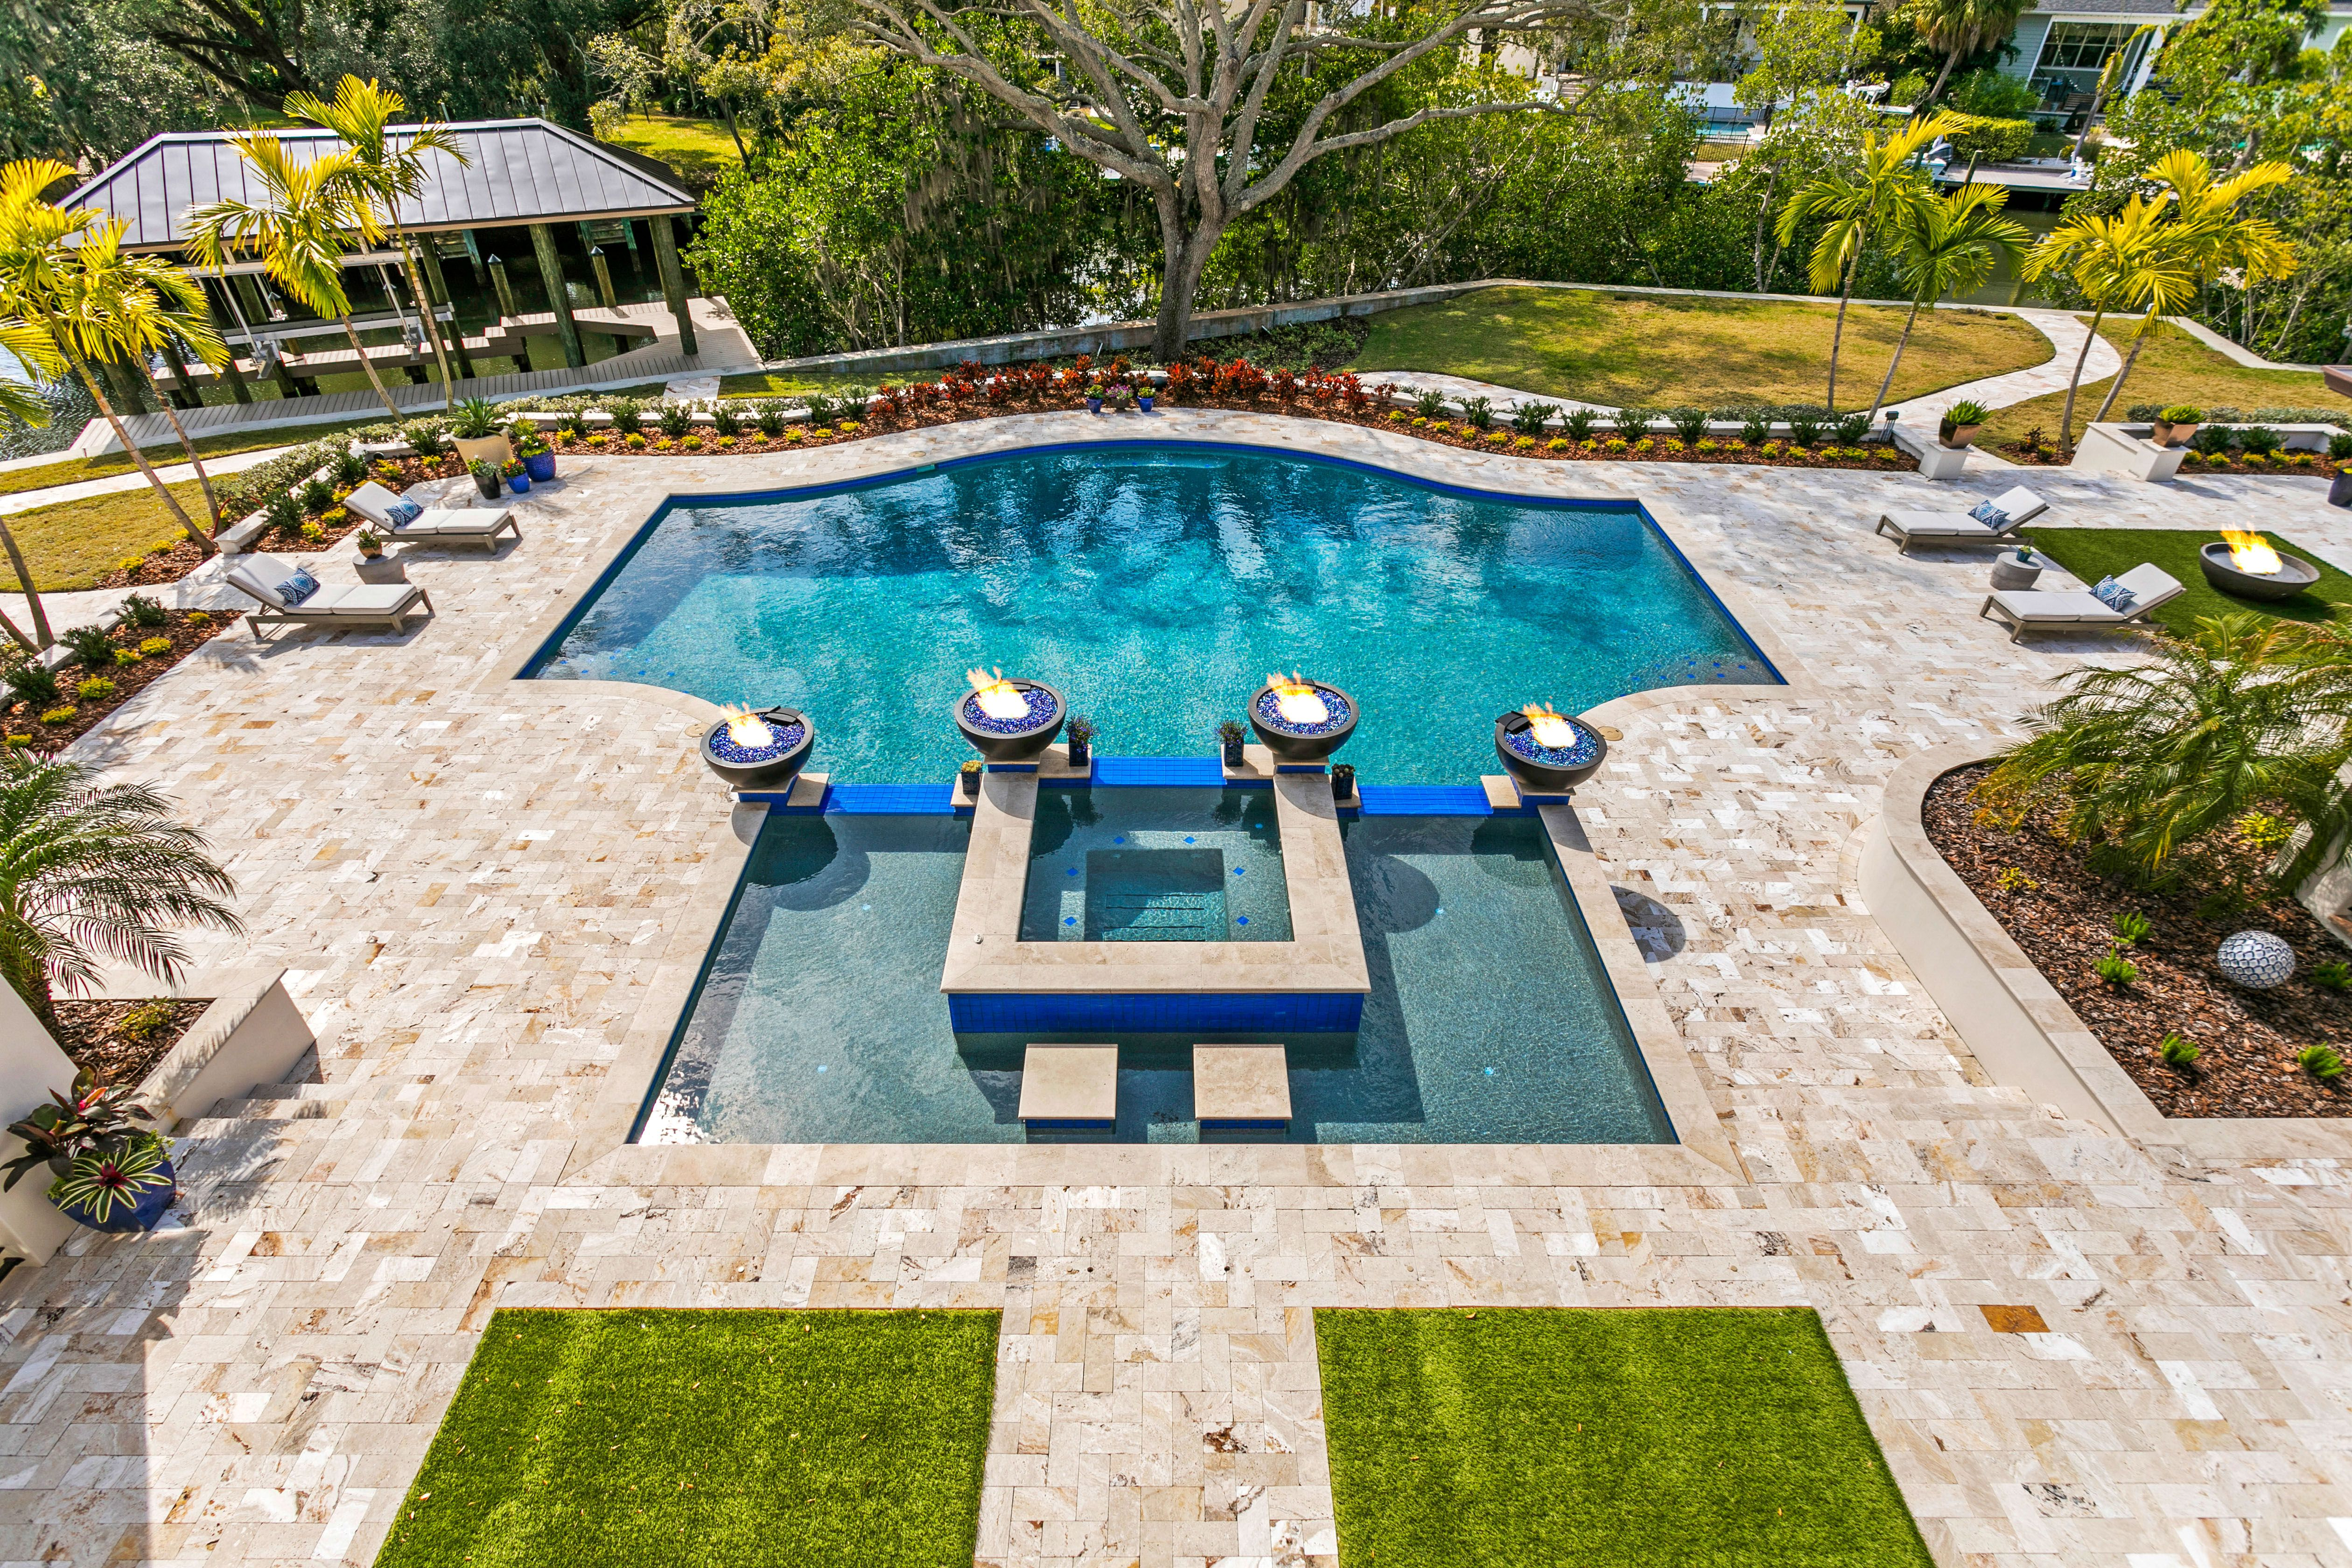 2621 N Dundee St pool